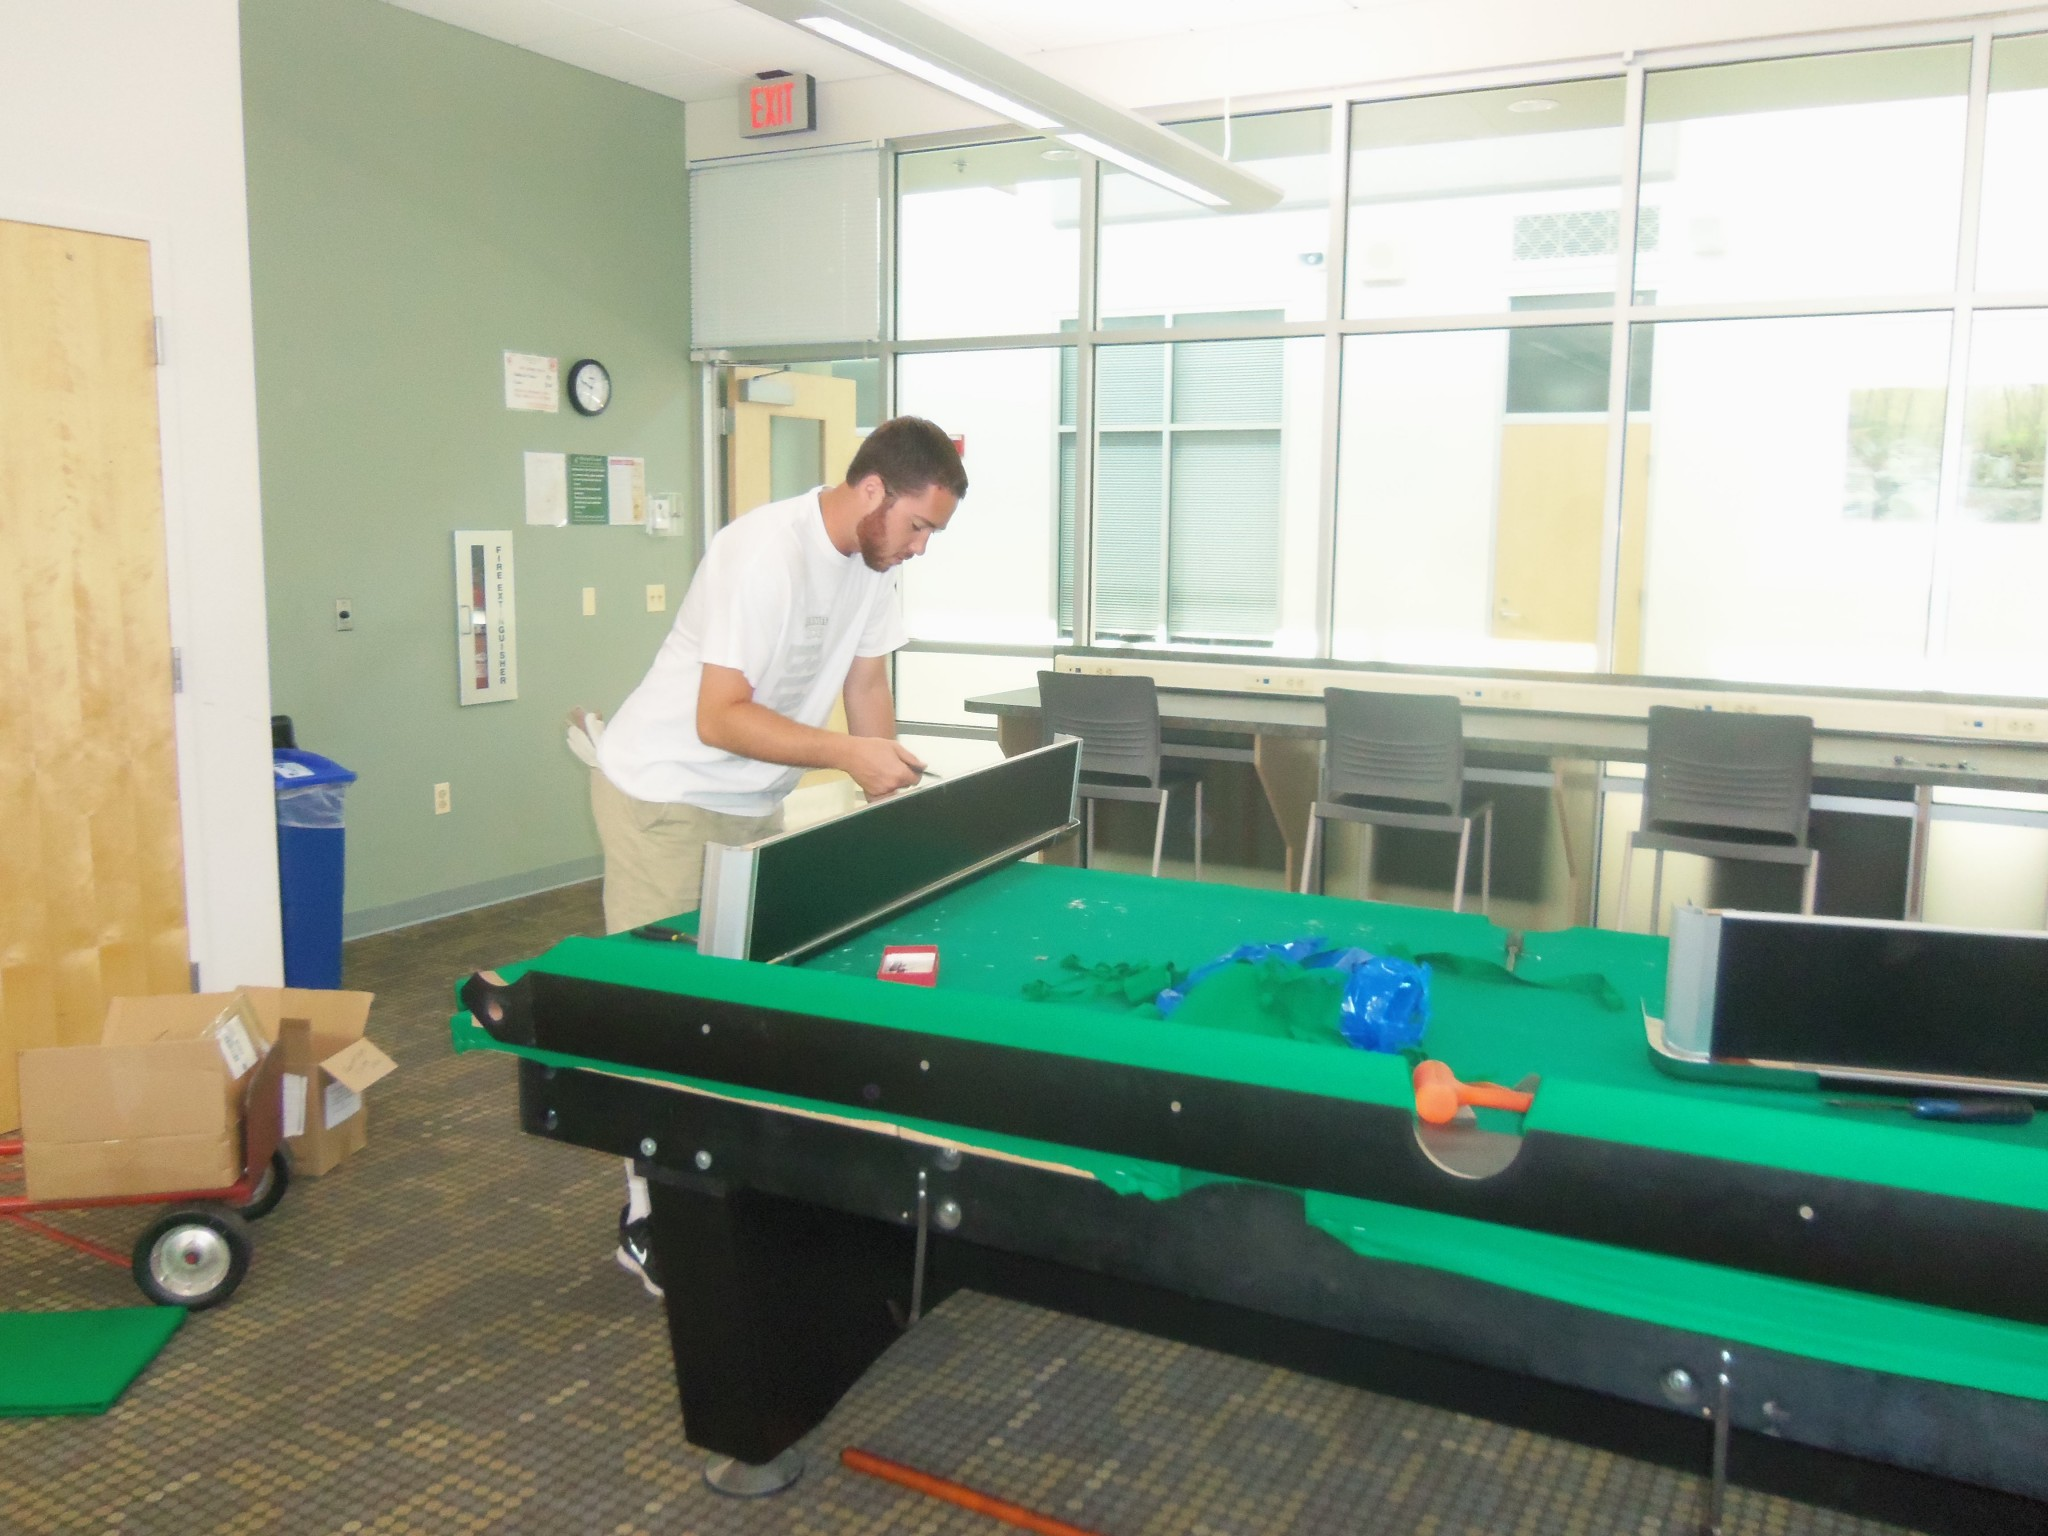 Pool Tables Services Offered Cagles Billiards - Billiard table services